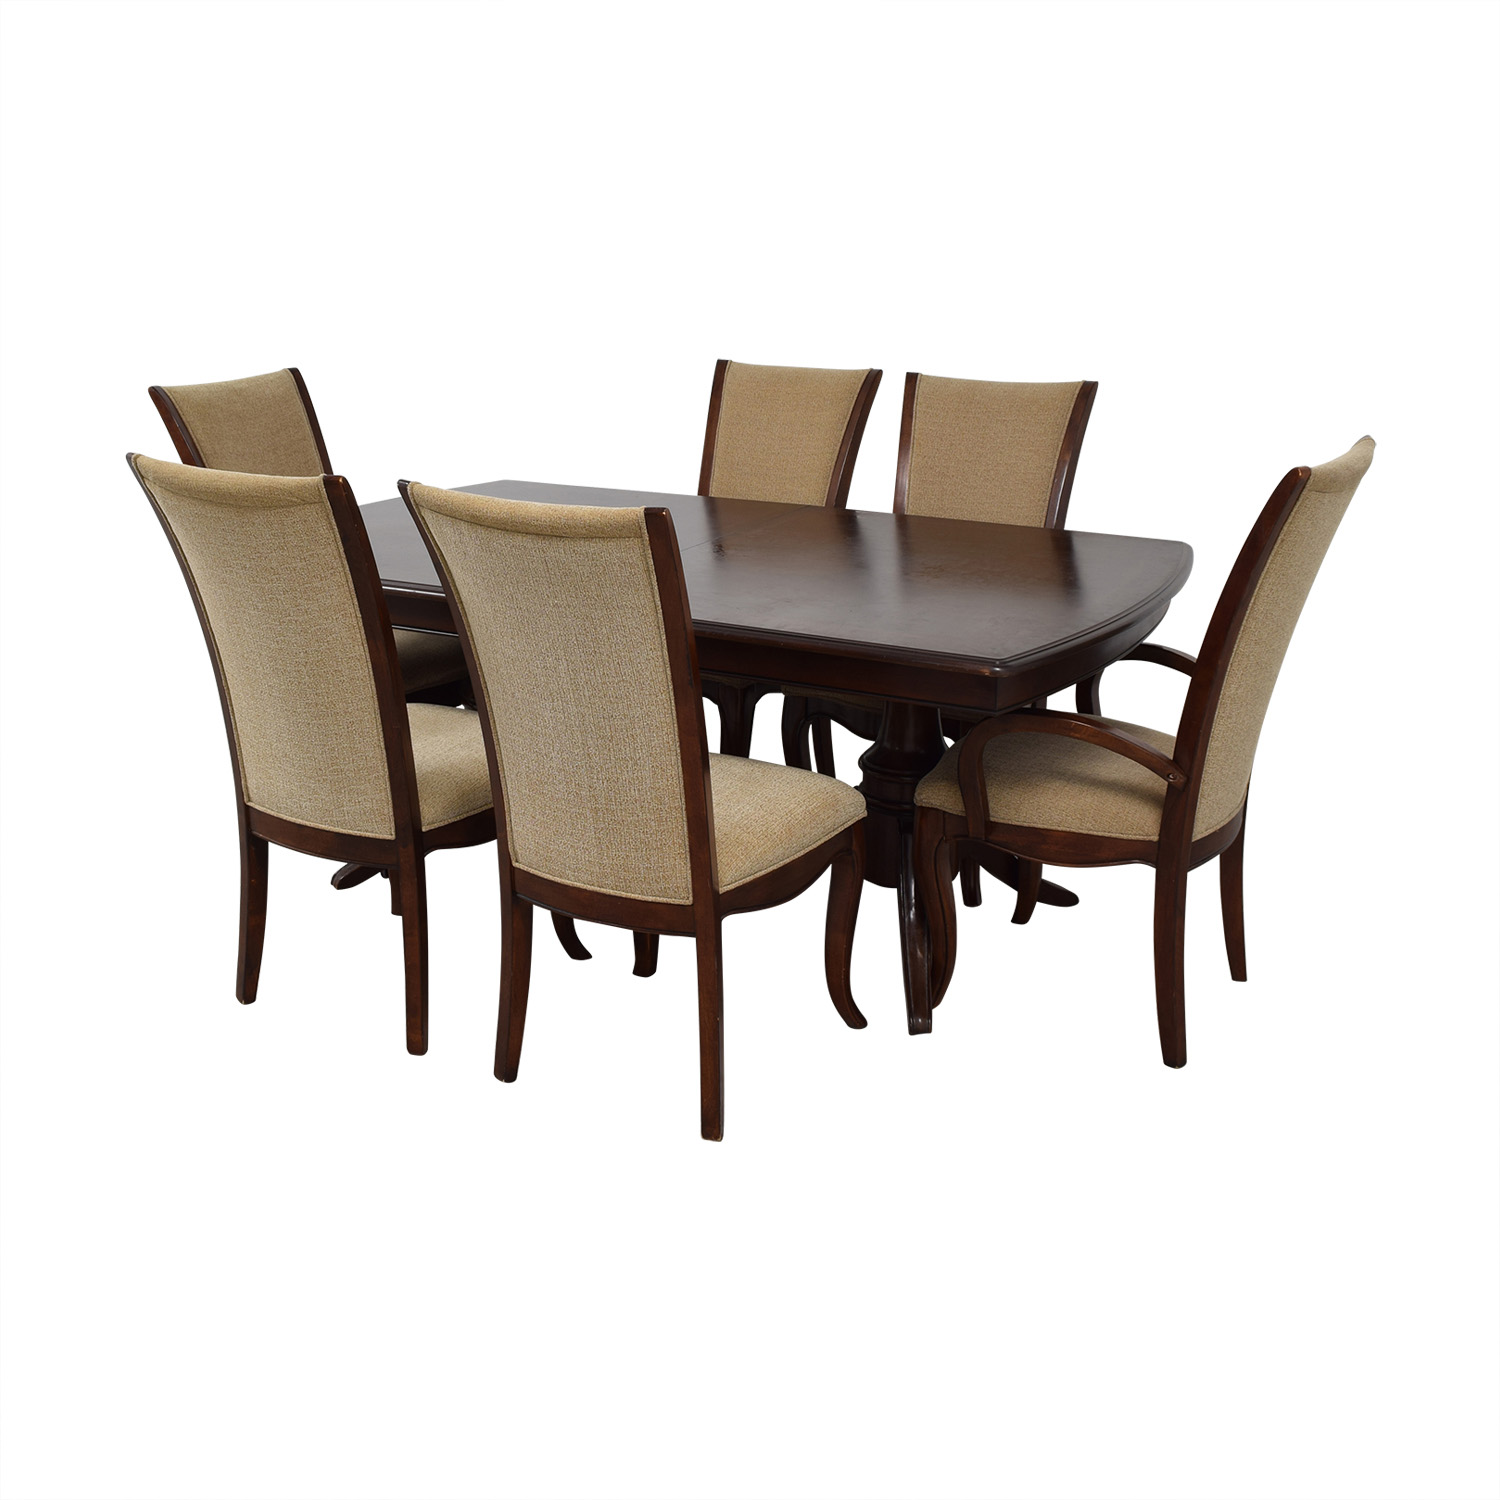 Raymour & Flanigan Raymour & Flanigan Extendable Dining Set with Padded Protector nj